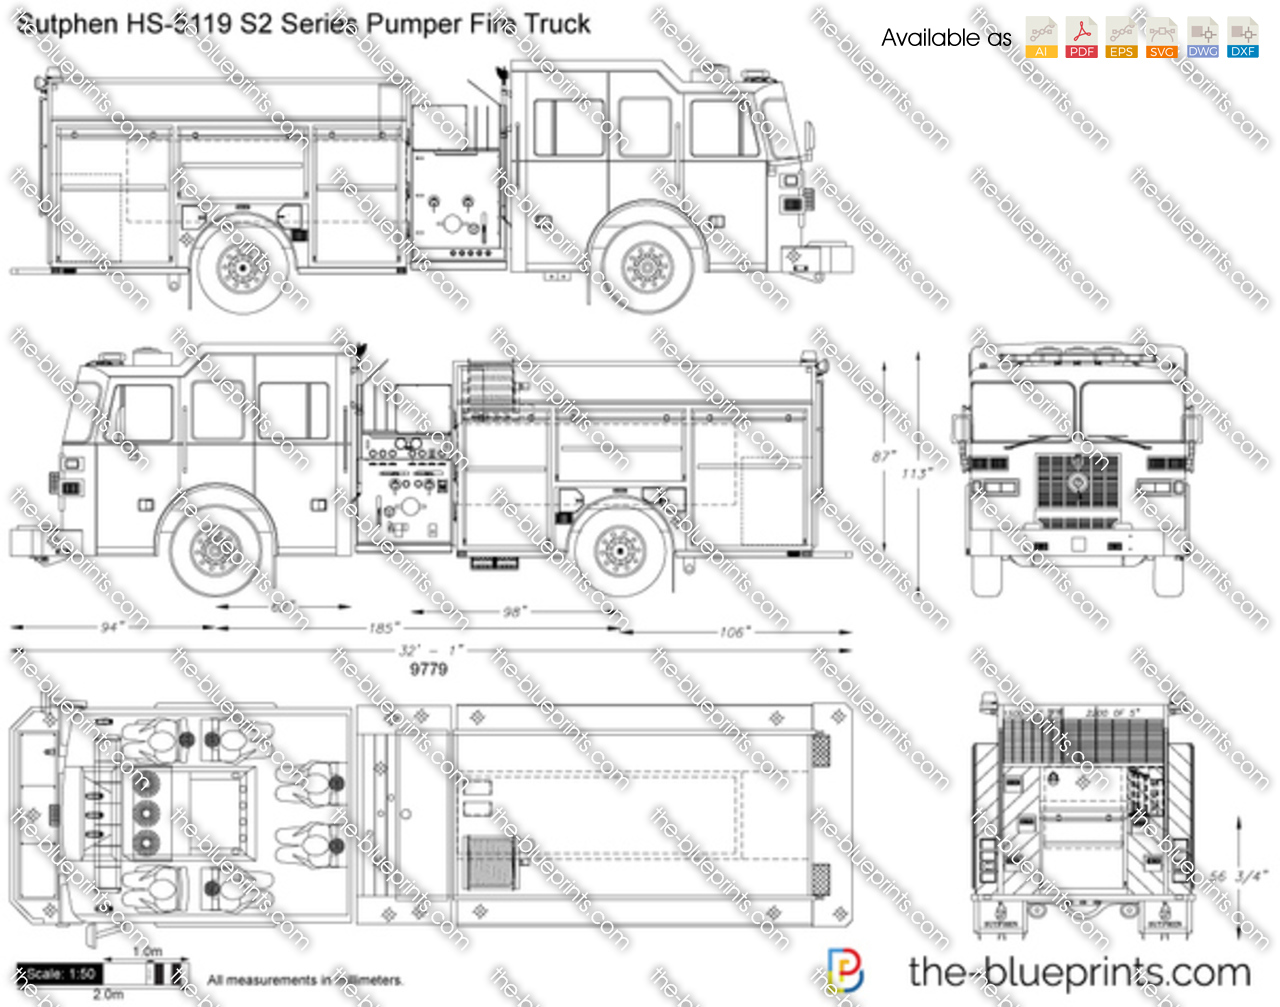 Fire Truck Engine Diagram Wiring Library Download